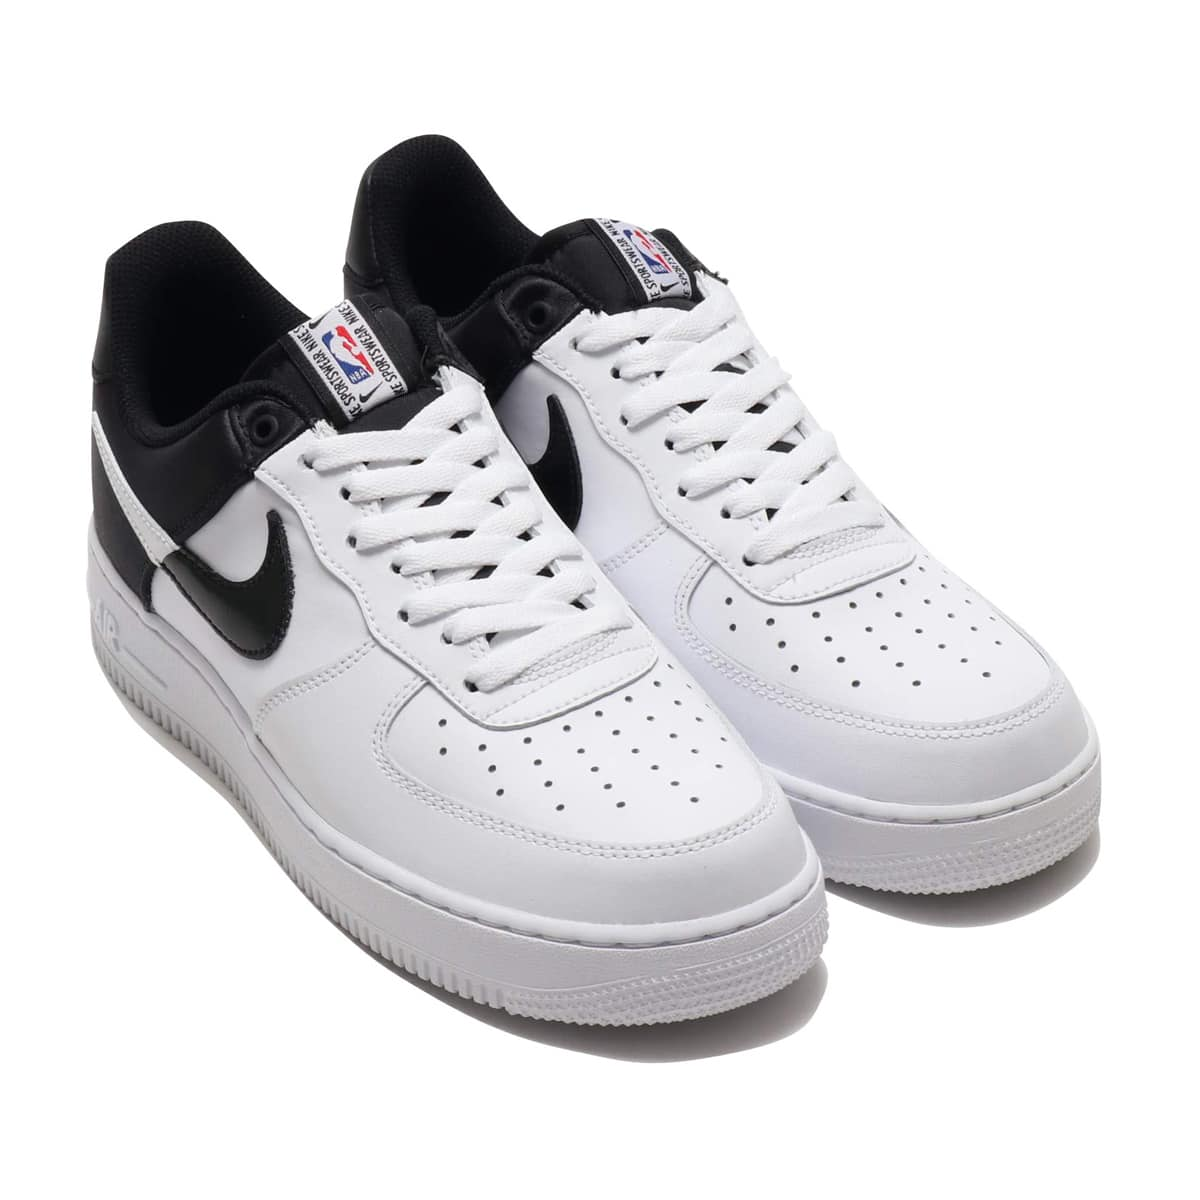 NIKE AIR FORCE 1 '07 LV8 1 WHITE/BLACK-WHITE 19HO-S_photo_large